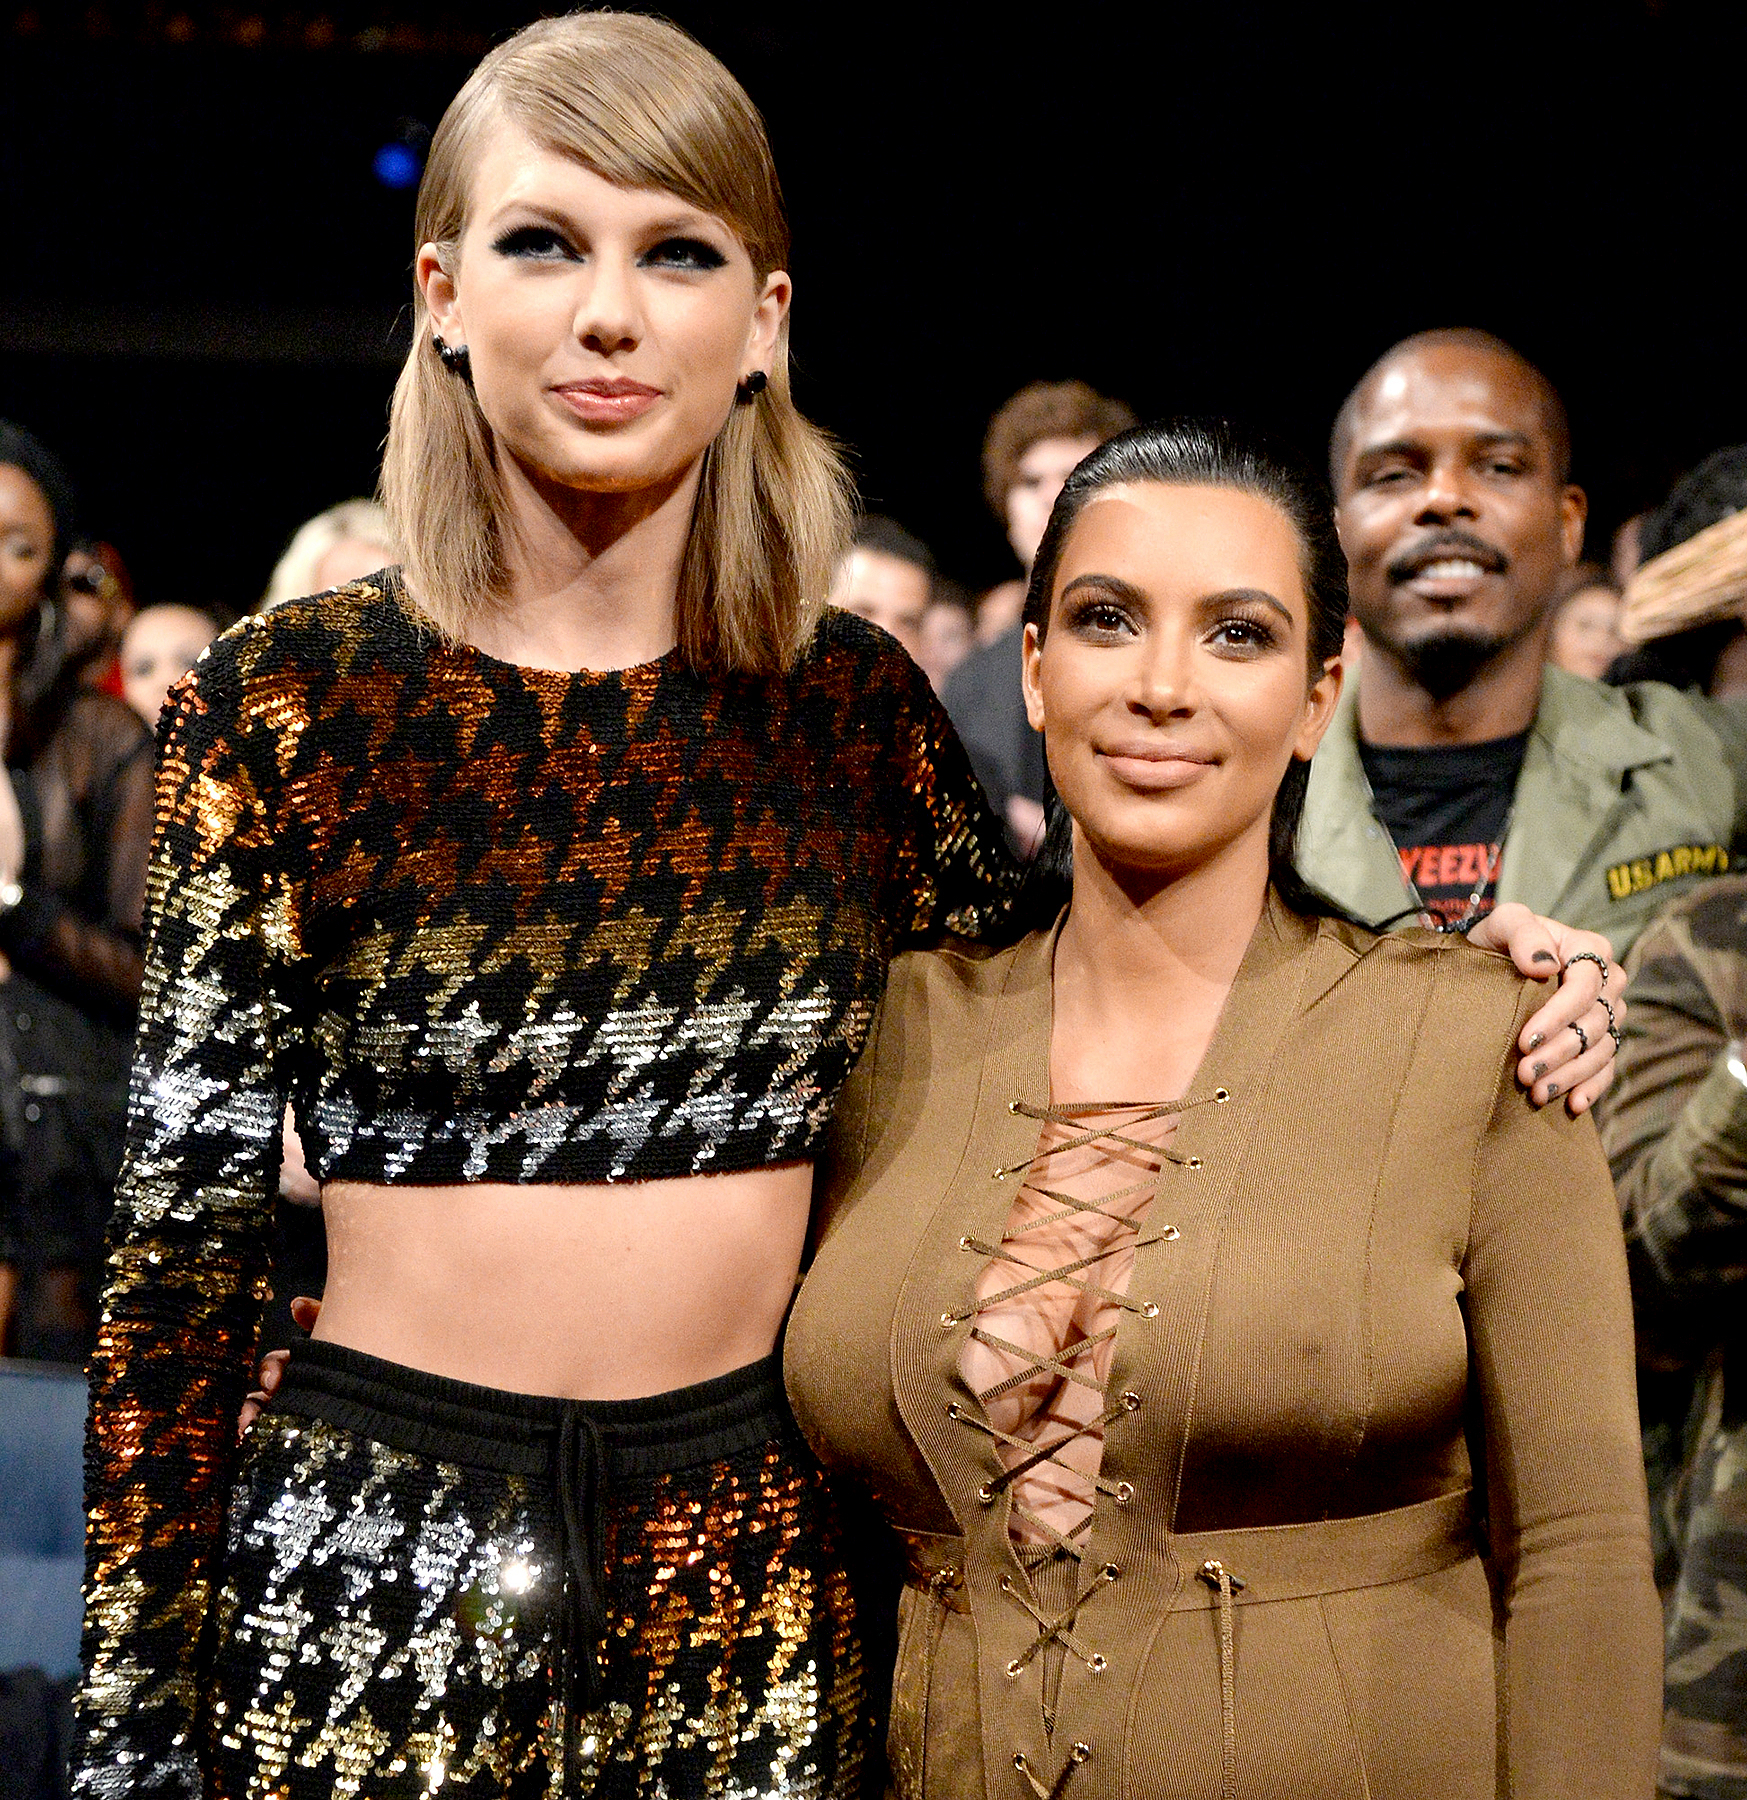 Taylor Swift and Kim Kardashian West attend the 2015 MTV Video Music Awards at Microsoft Theater on August 30, 2015 in Los Angeles, California.